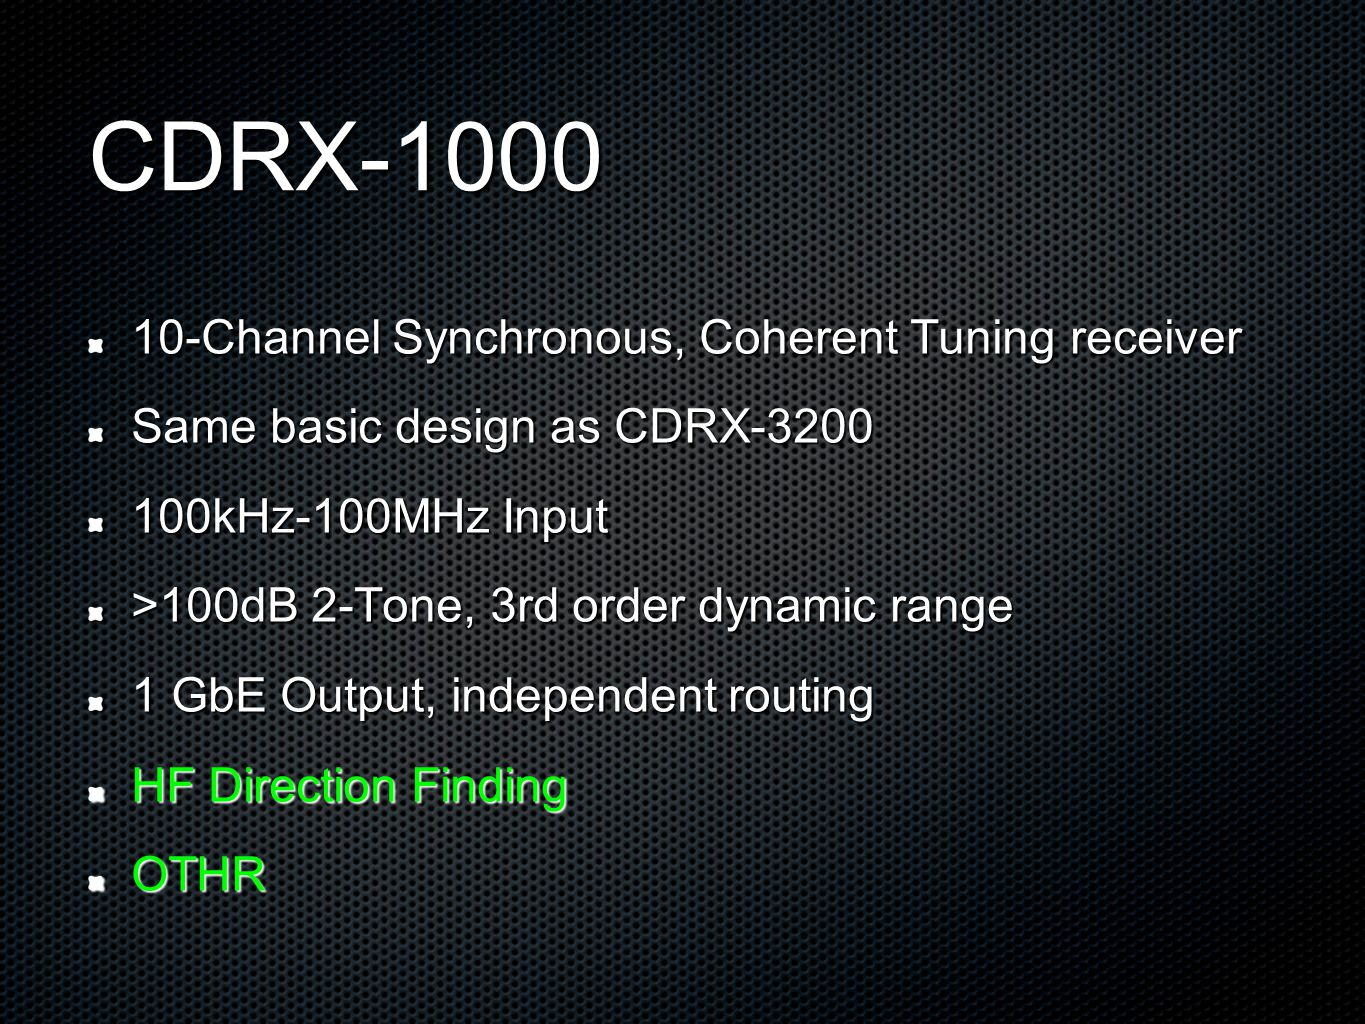 CDRX-1000 10-Channel Synchronous, Coherent Tuning receiver Same basic design as CDRX-3200 100kHz-100MHz Input >100dB 2-Tone, 3rd order dynamic range 1 GbE Output, independent routing HF Direction Finding OTHR